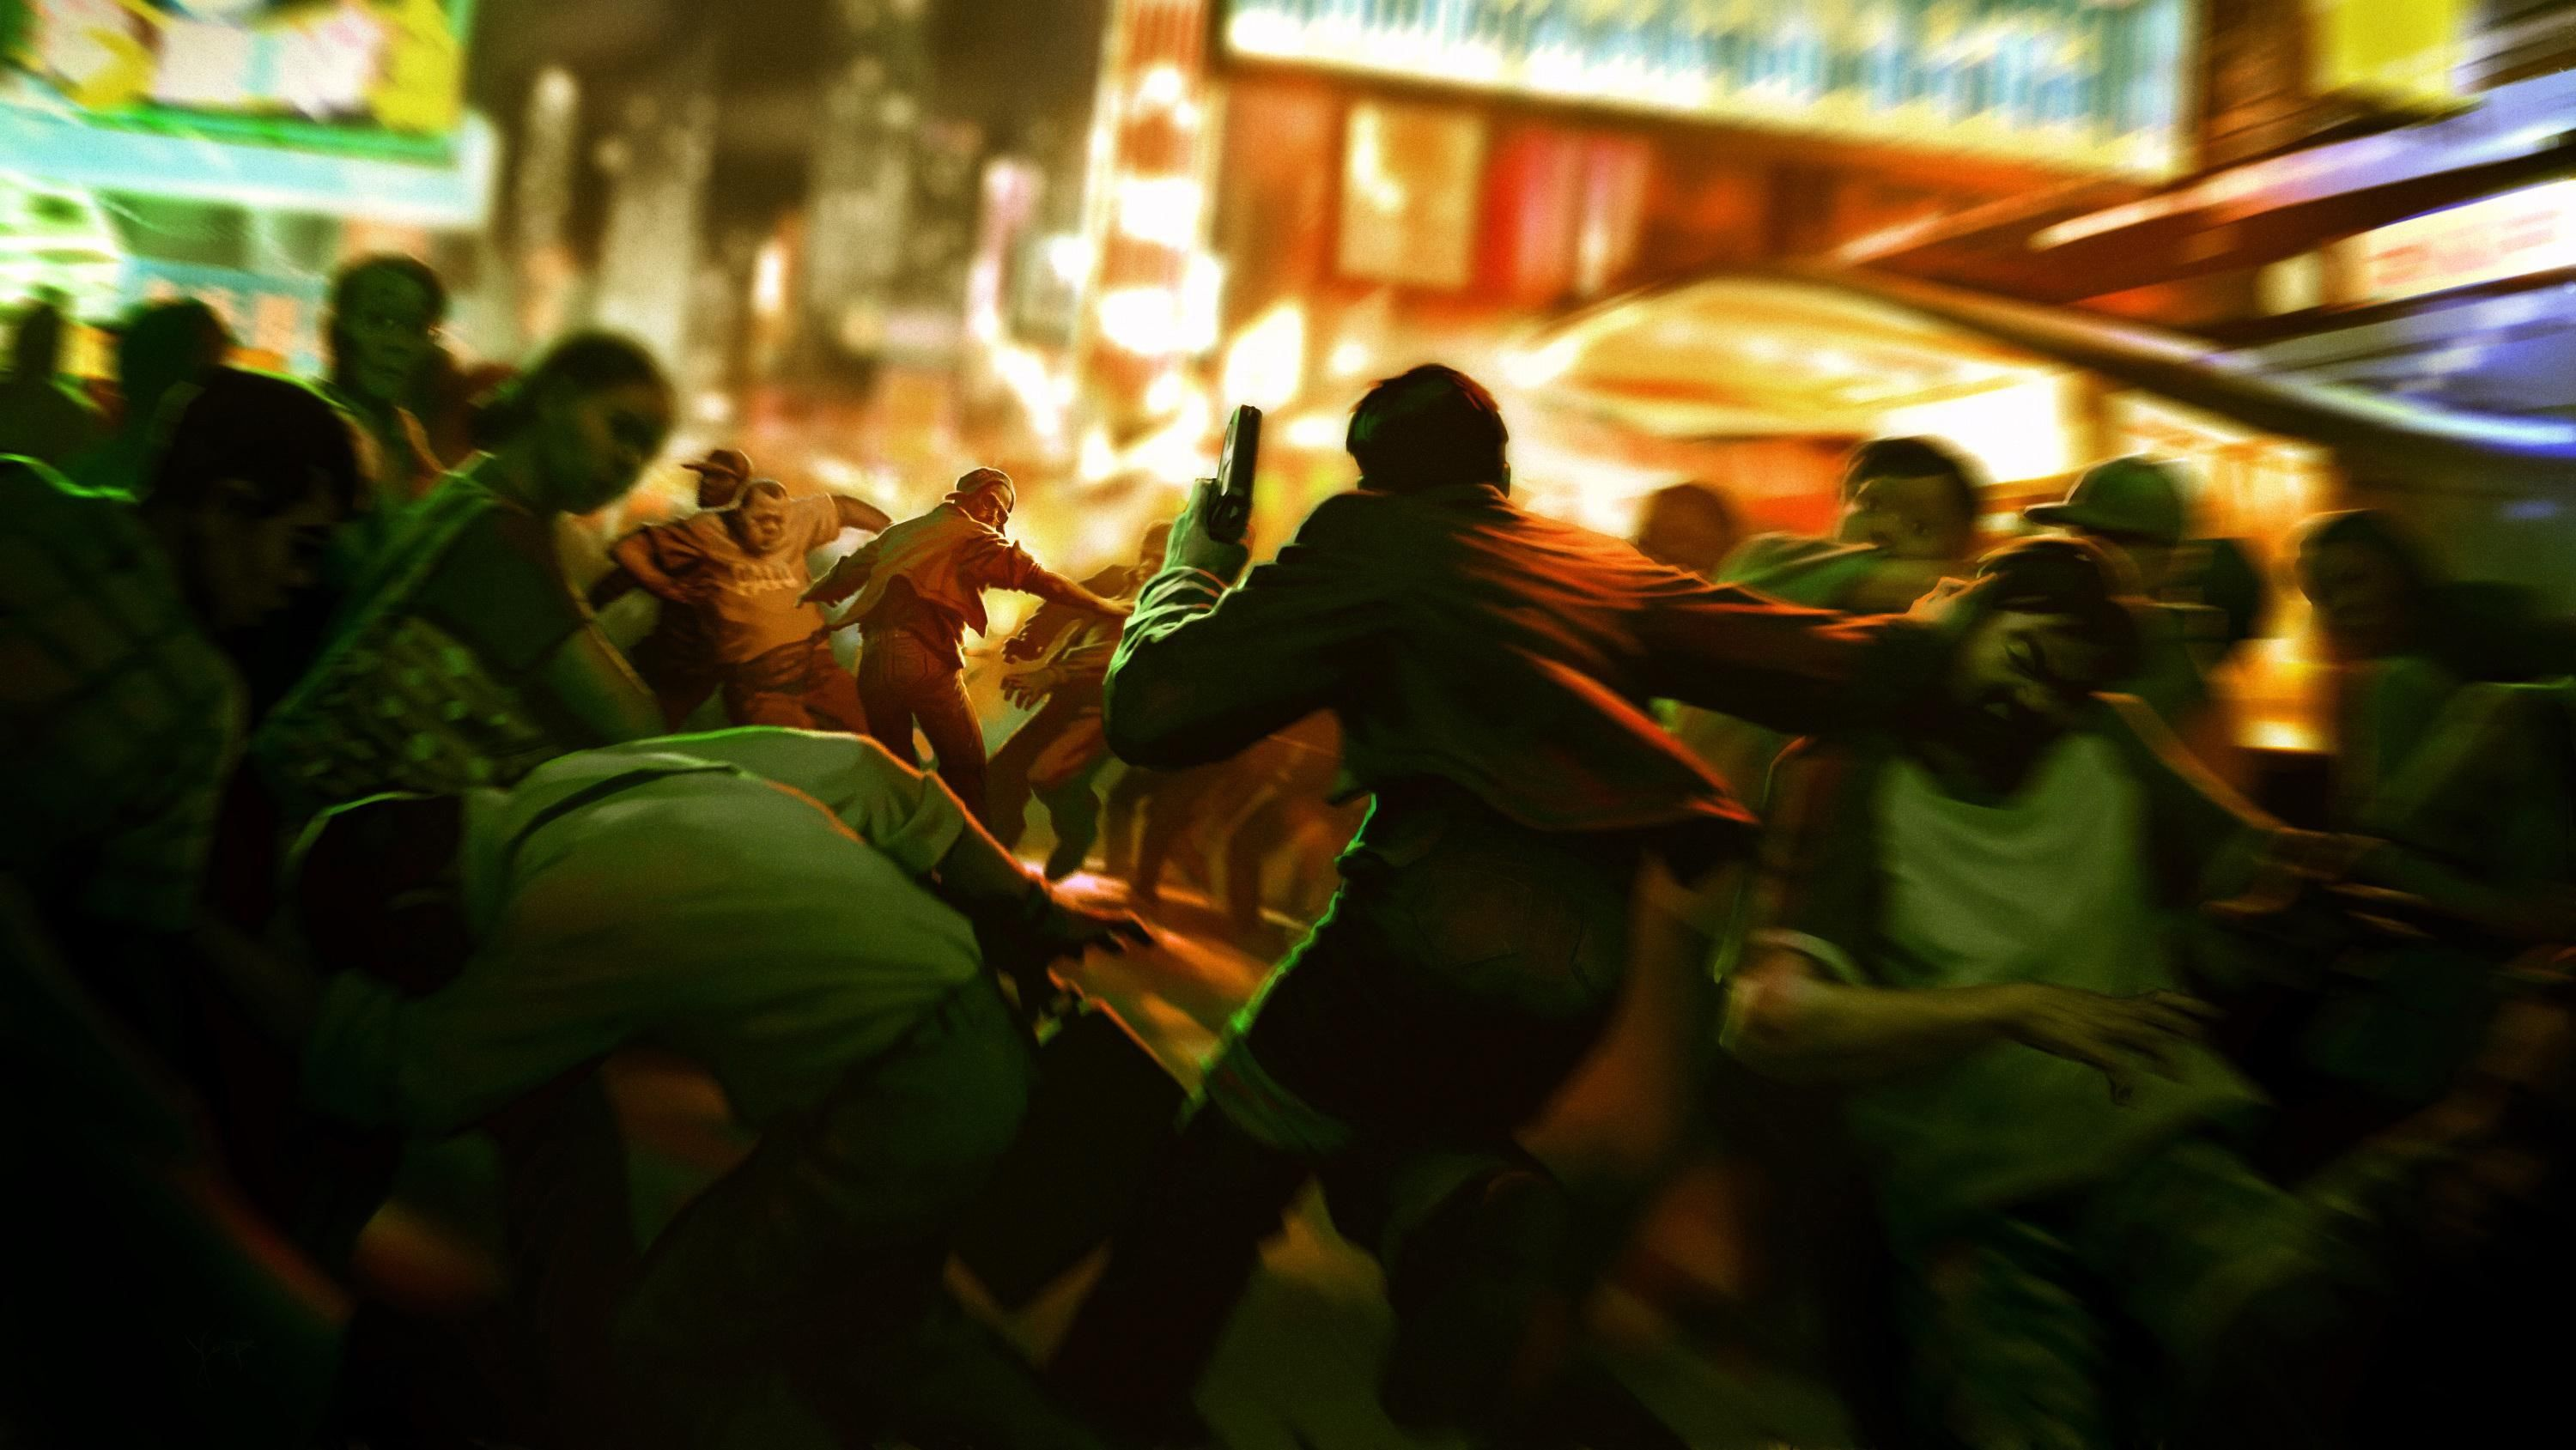 High resolution wallpapers sleeping dogs image marland